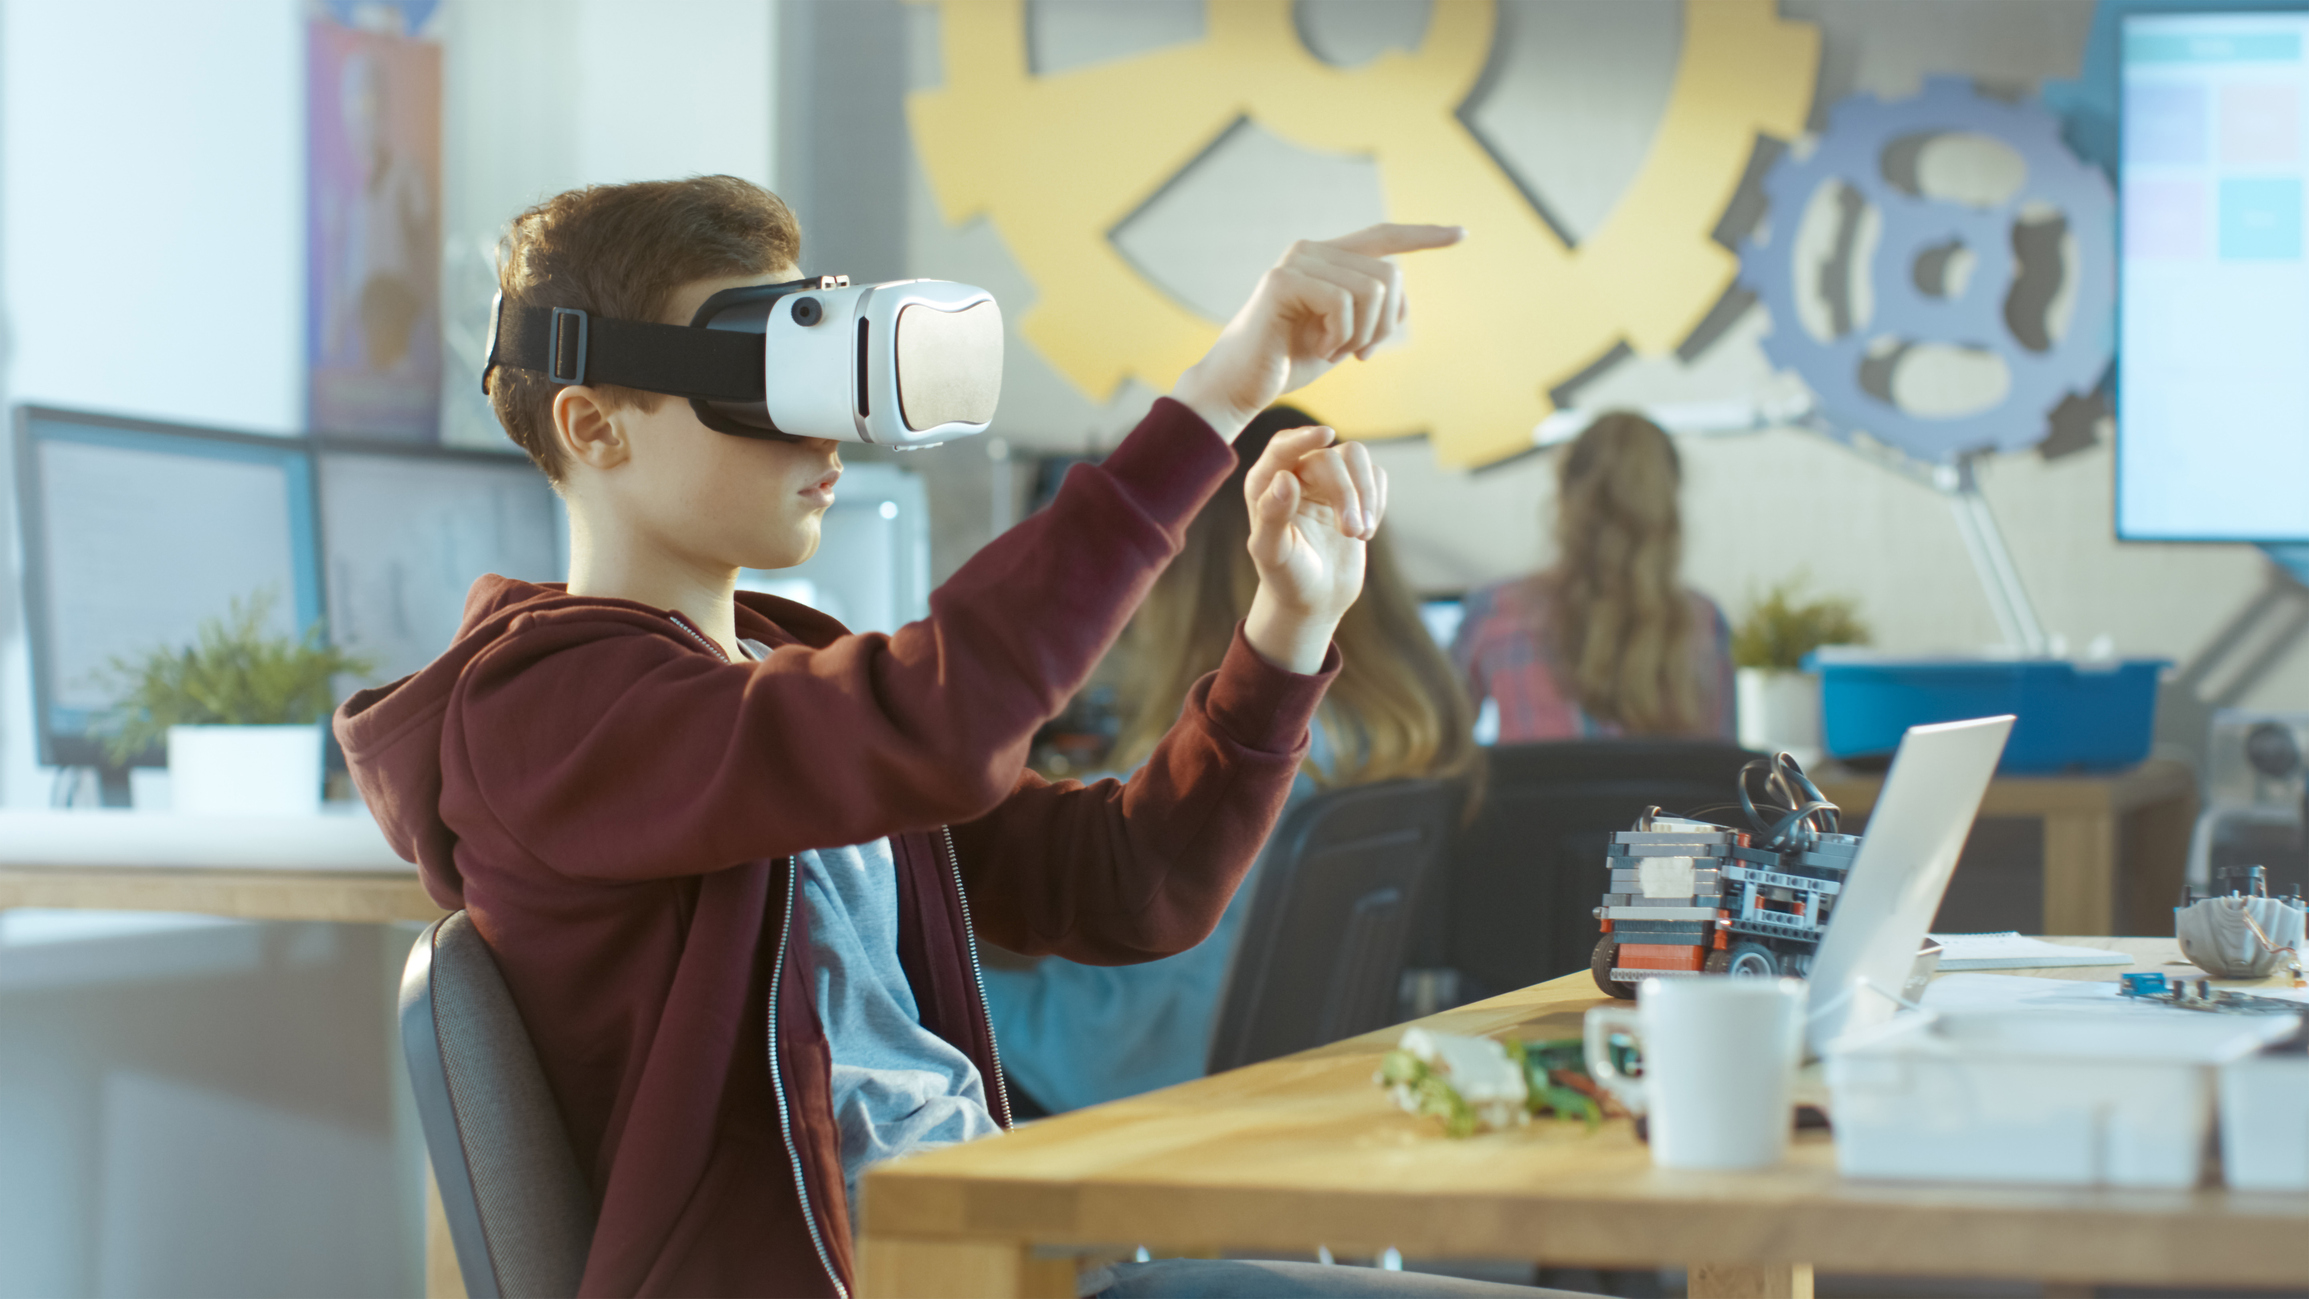 Reimagining The Possibilities Of Education, Through VR